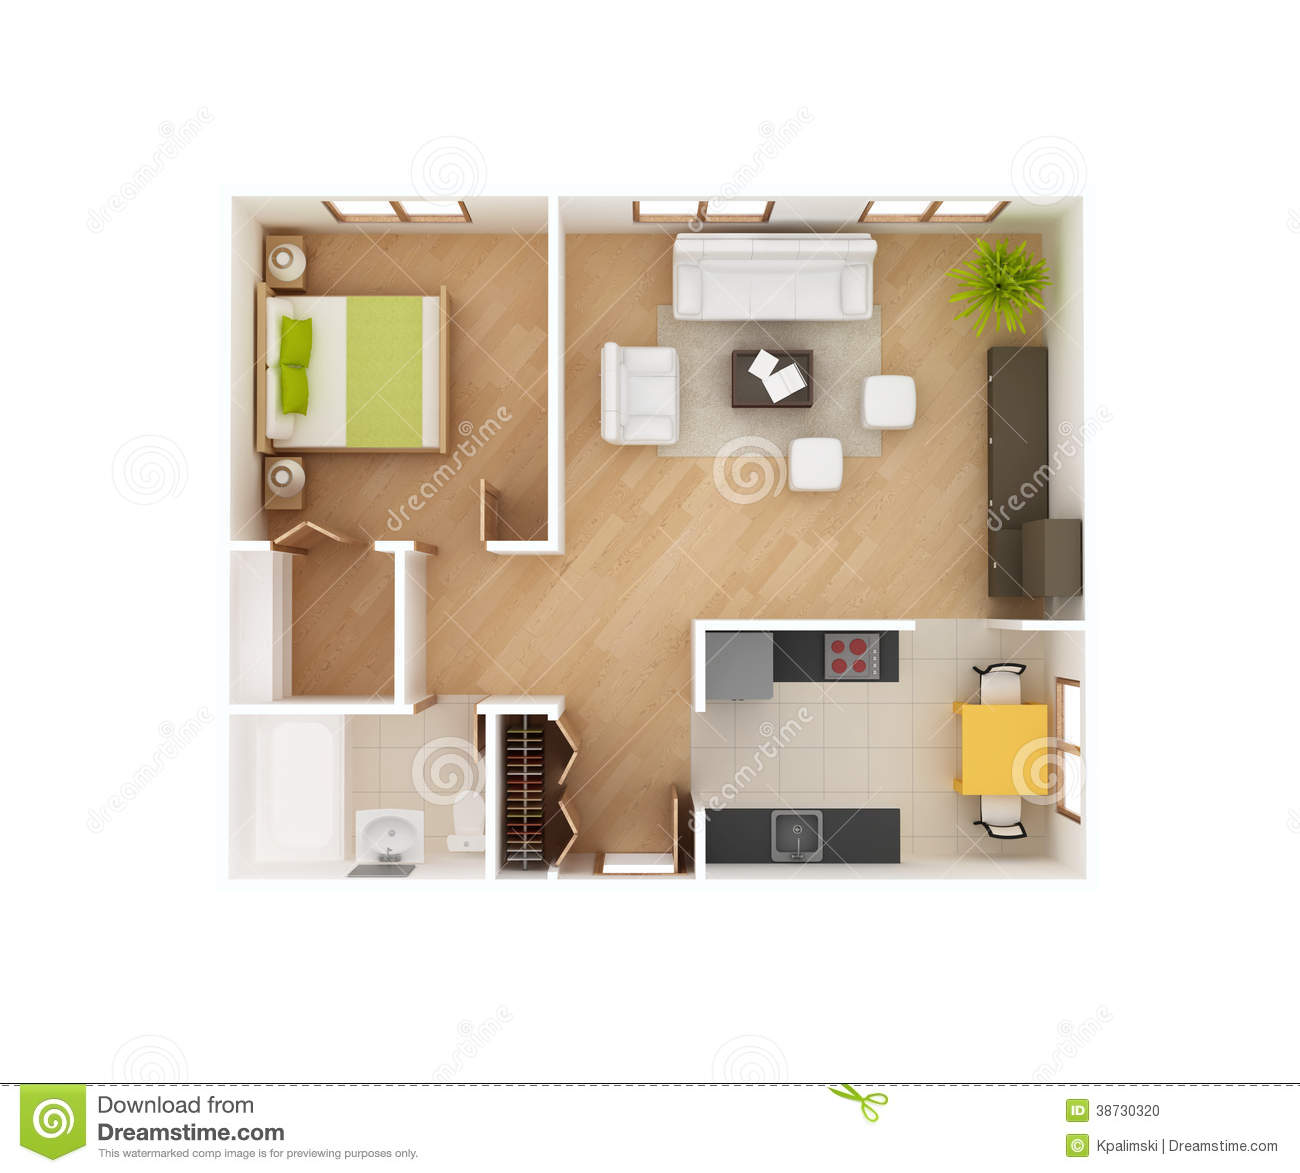 basic 3d house floor plan top view stock photo - House Floor Plan